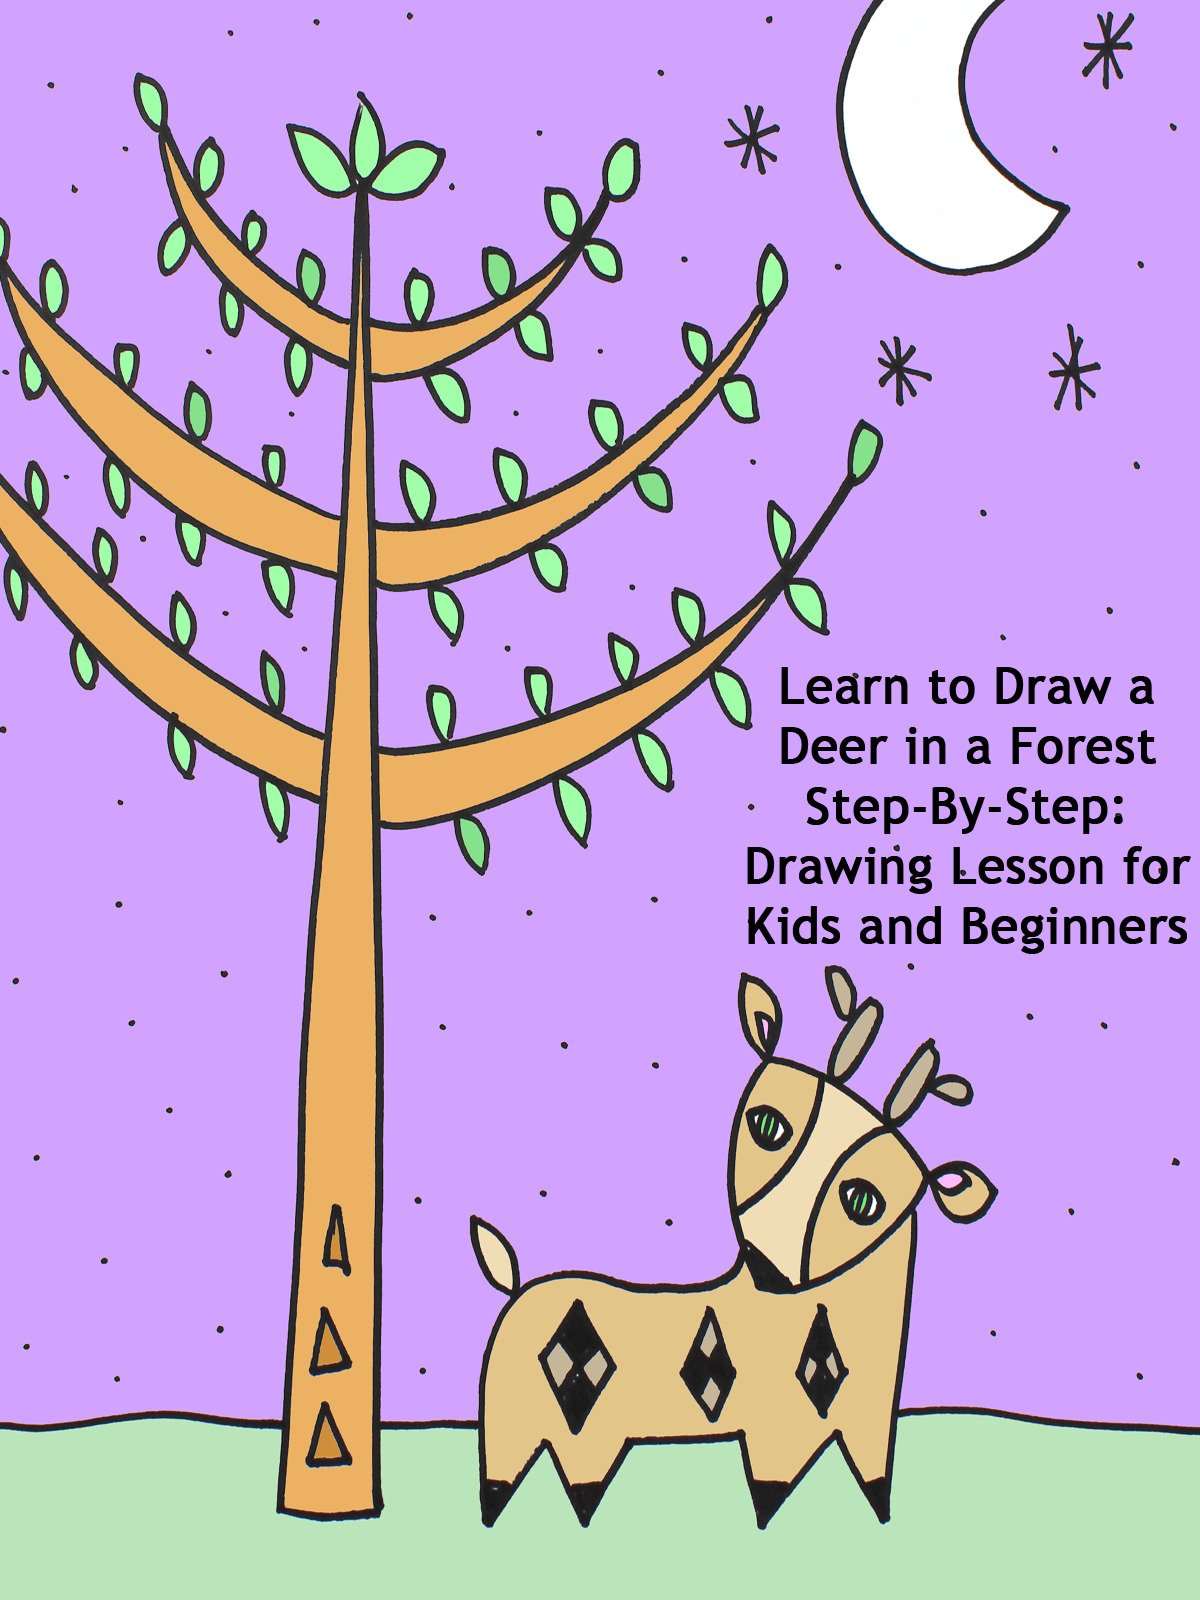 Learn to Draw a Deer in a Forest Step-By-Step: Drawing Lesson for Kids and Beginners